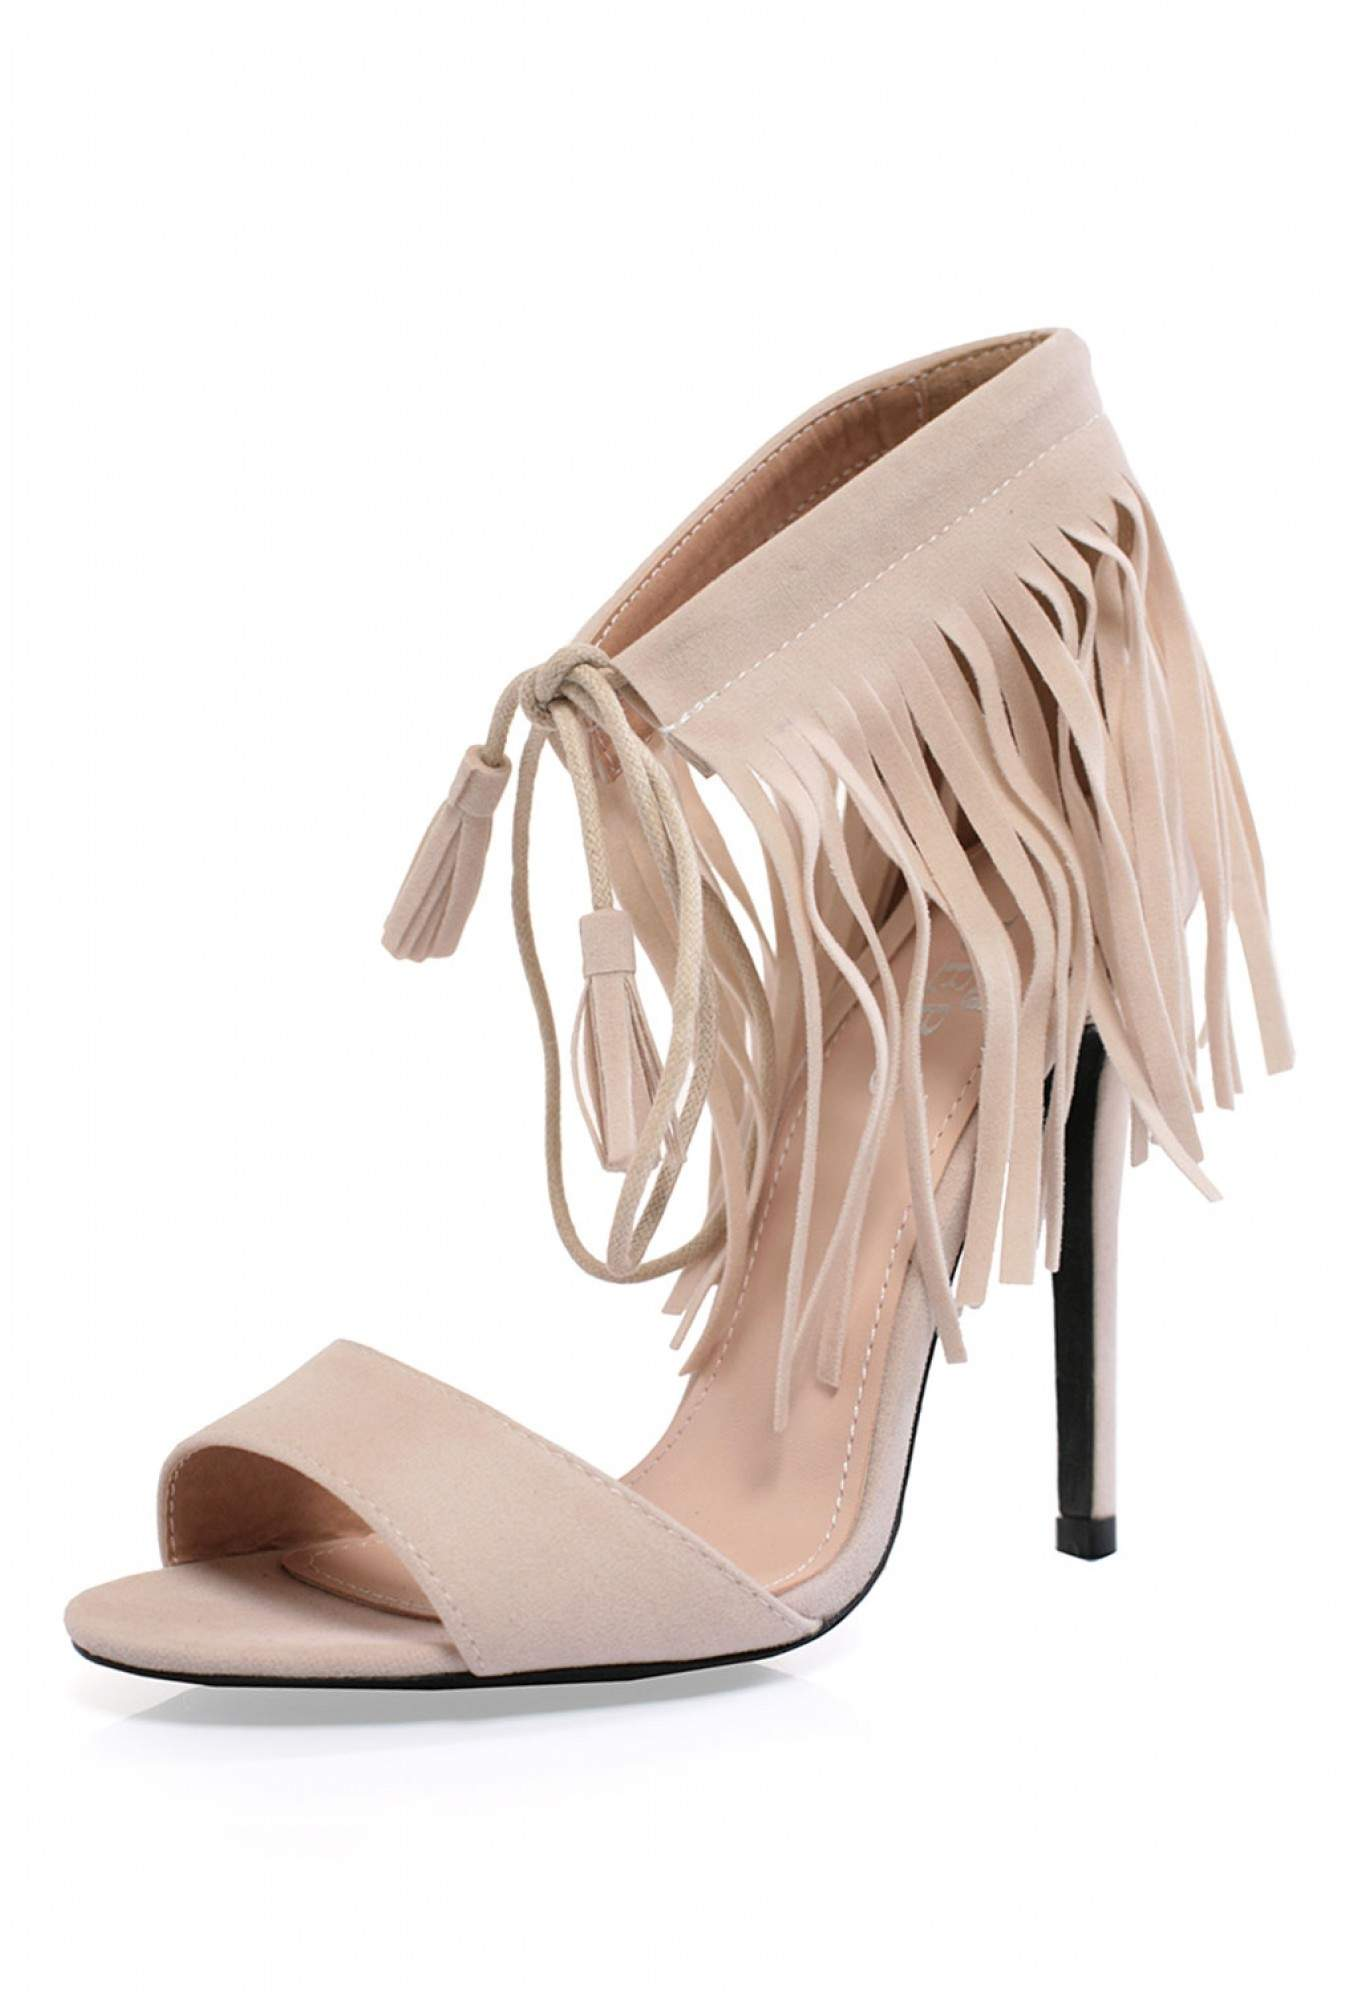 ece2c505475 Indigo Footwear Noella Fringe Heeled Sandals in Beige